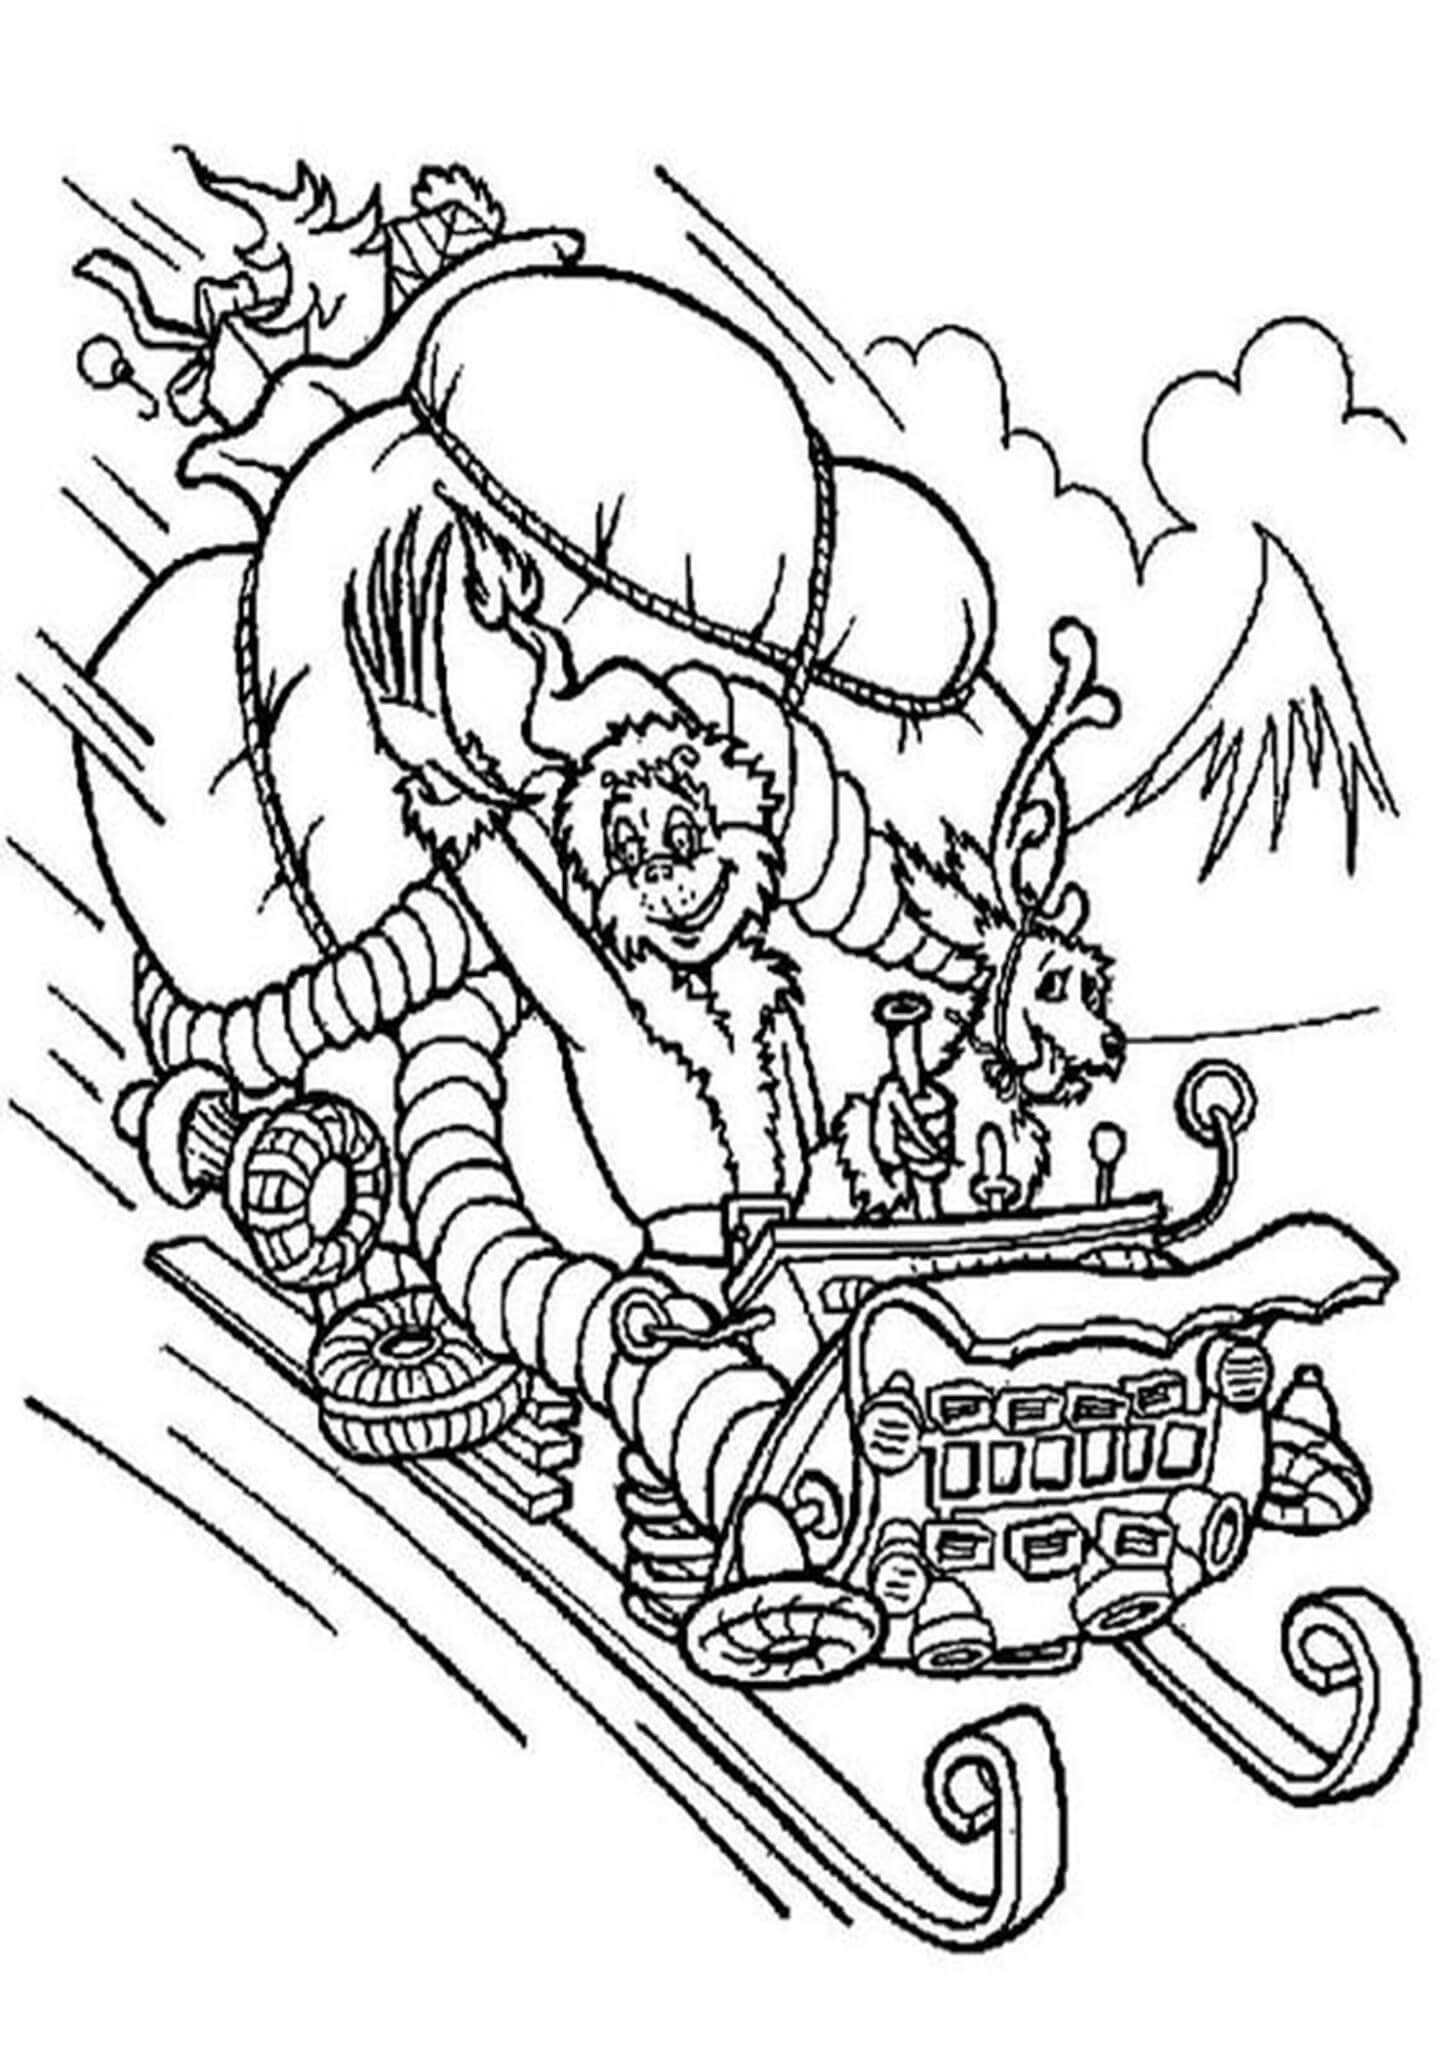 Free Printable The Grinch Coloring Pages In 2020 Grinch Coloring Pages Free Christmas Coloring Pages Christmas Coloring Pages